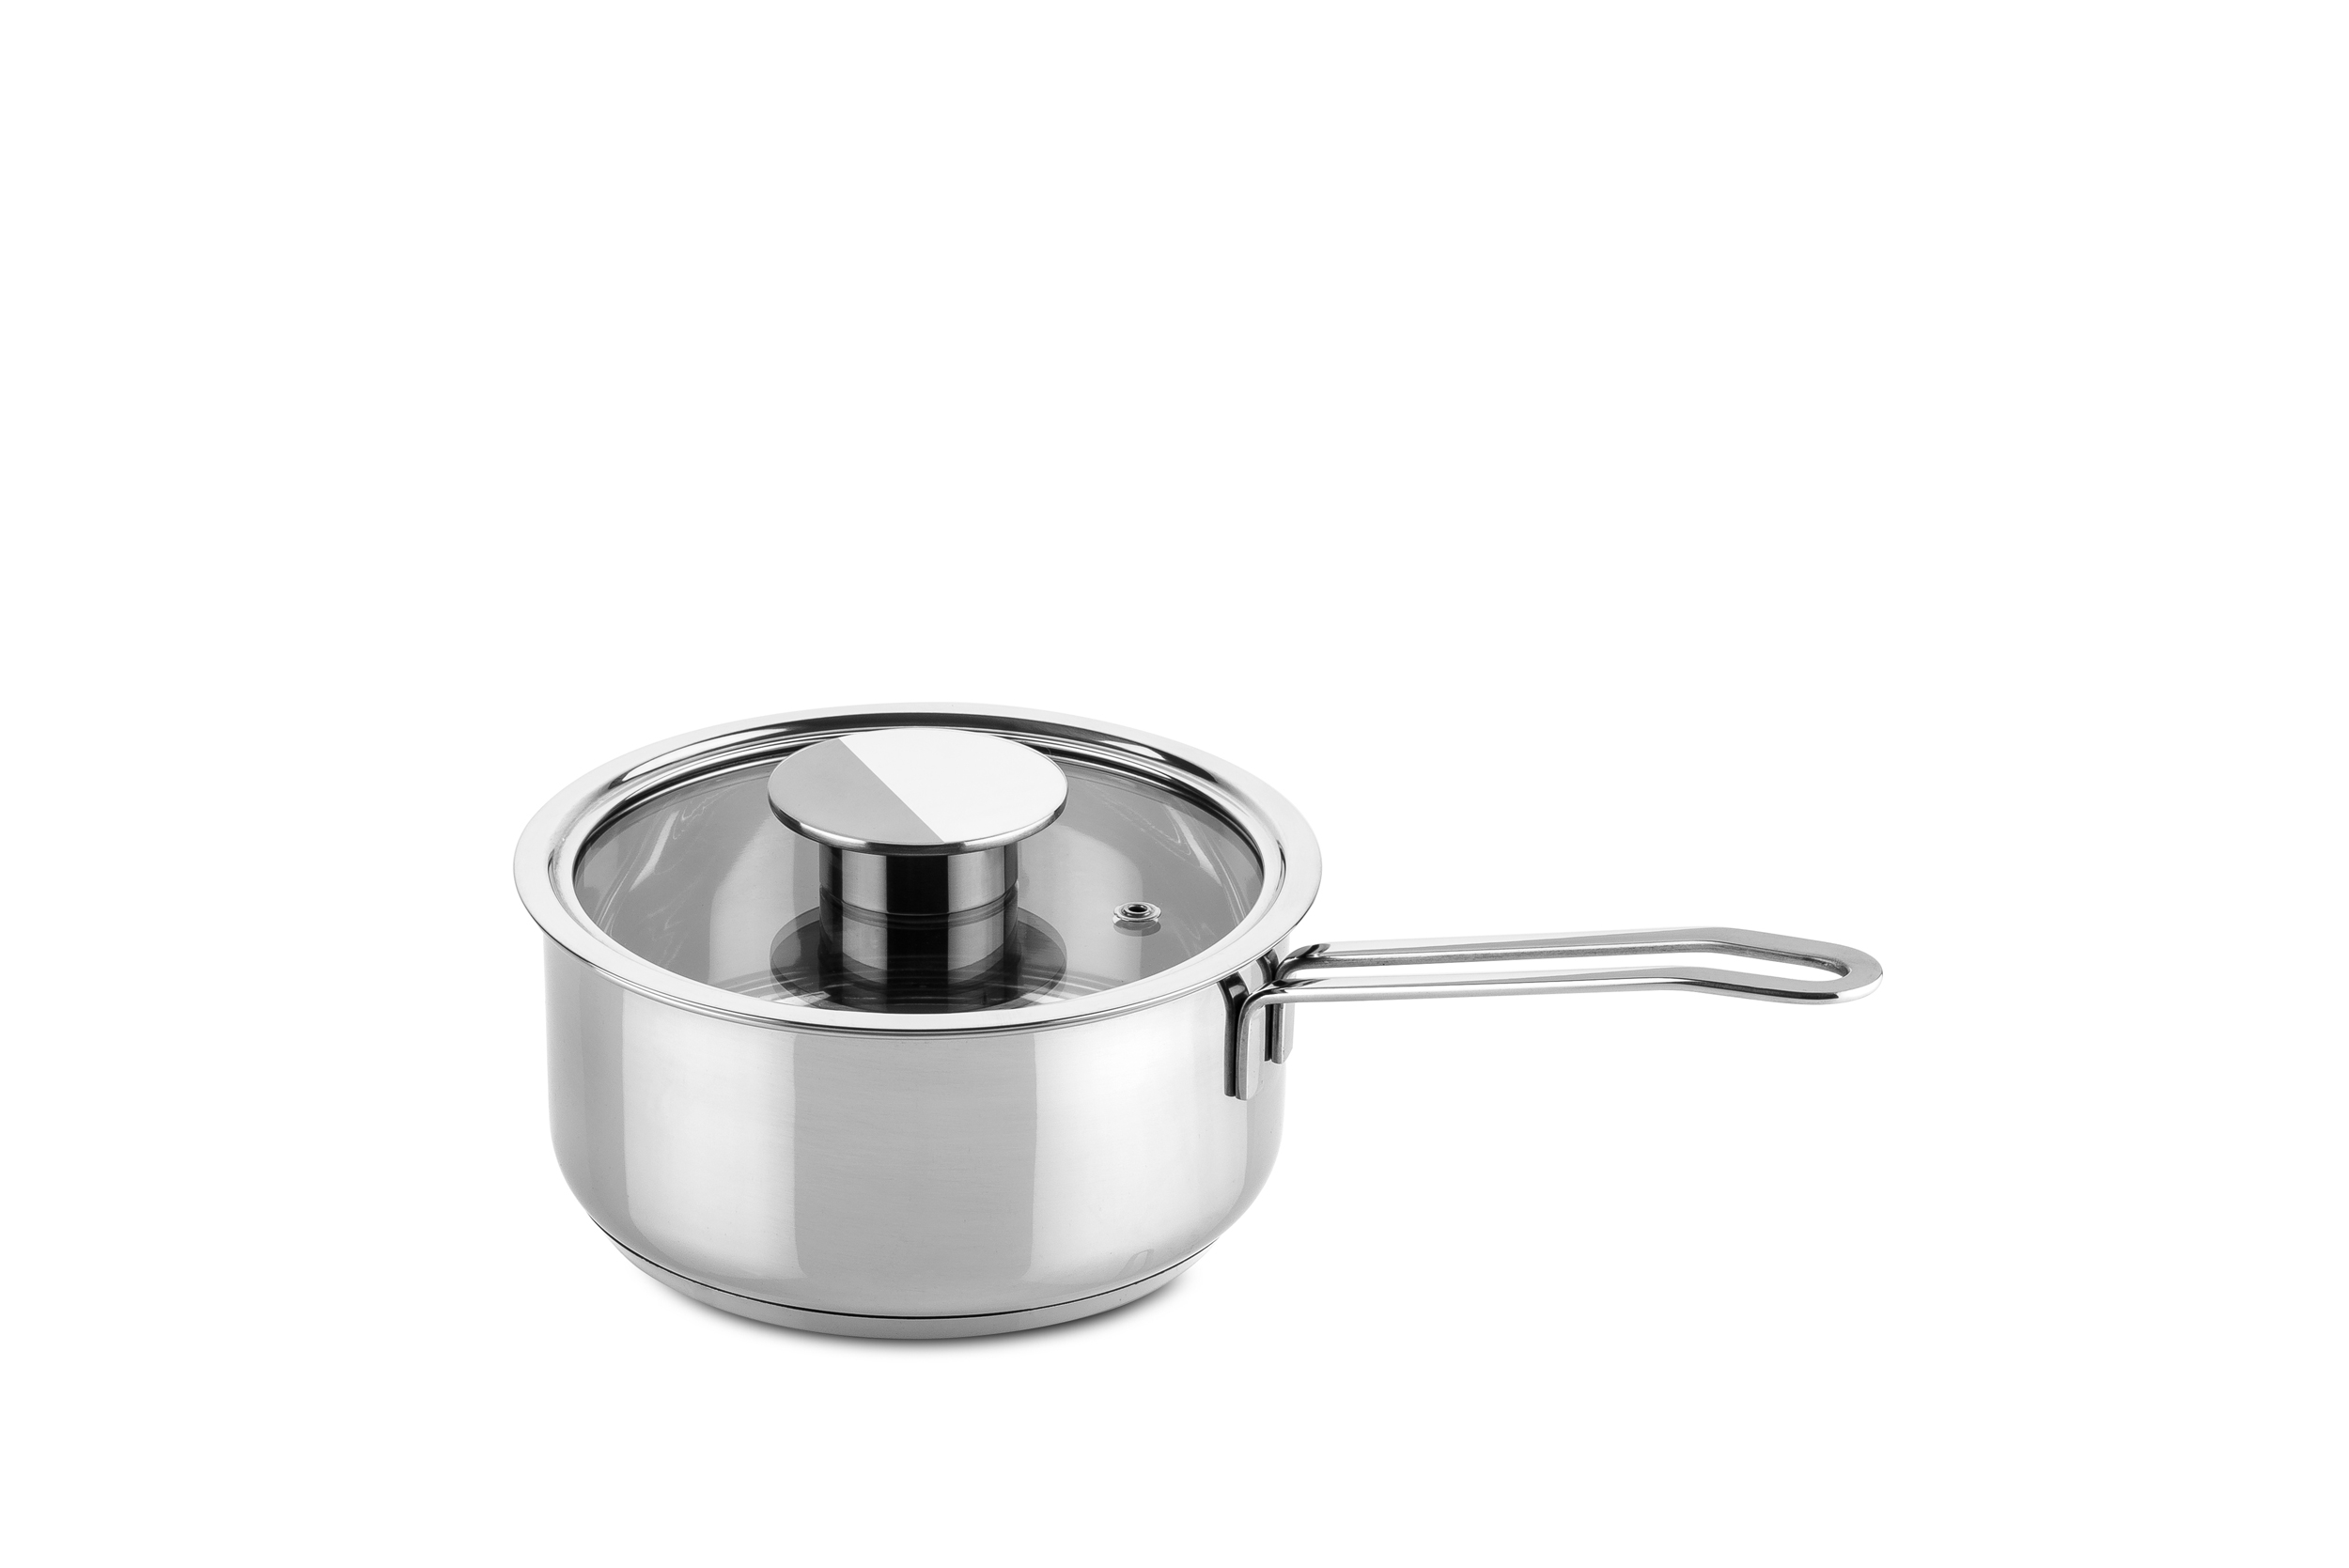 Deep Casserole 1 Handle W/Glass Lid